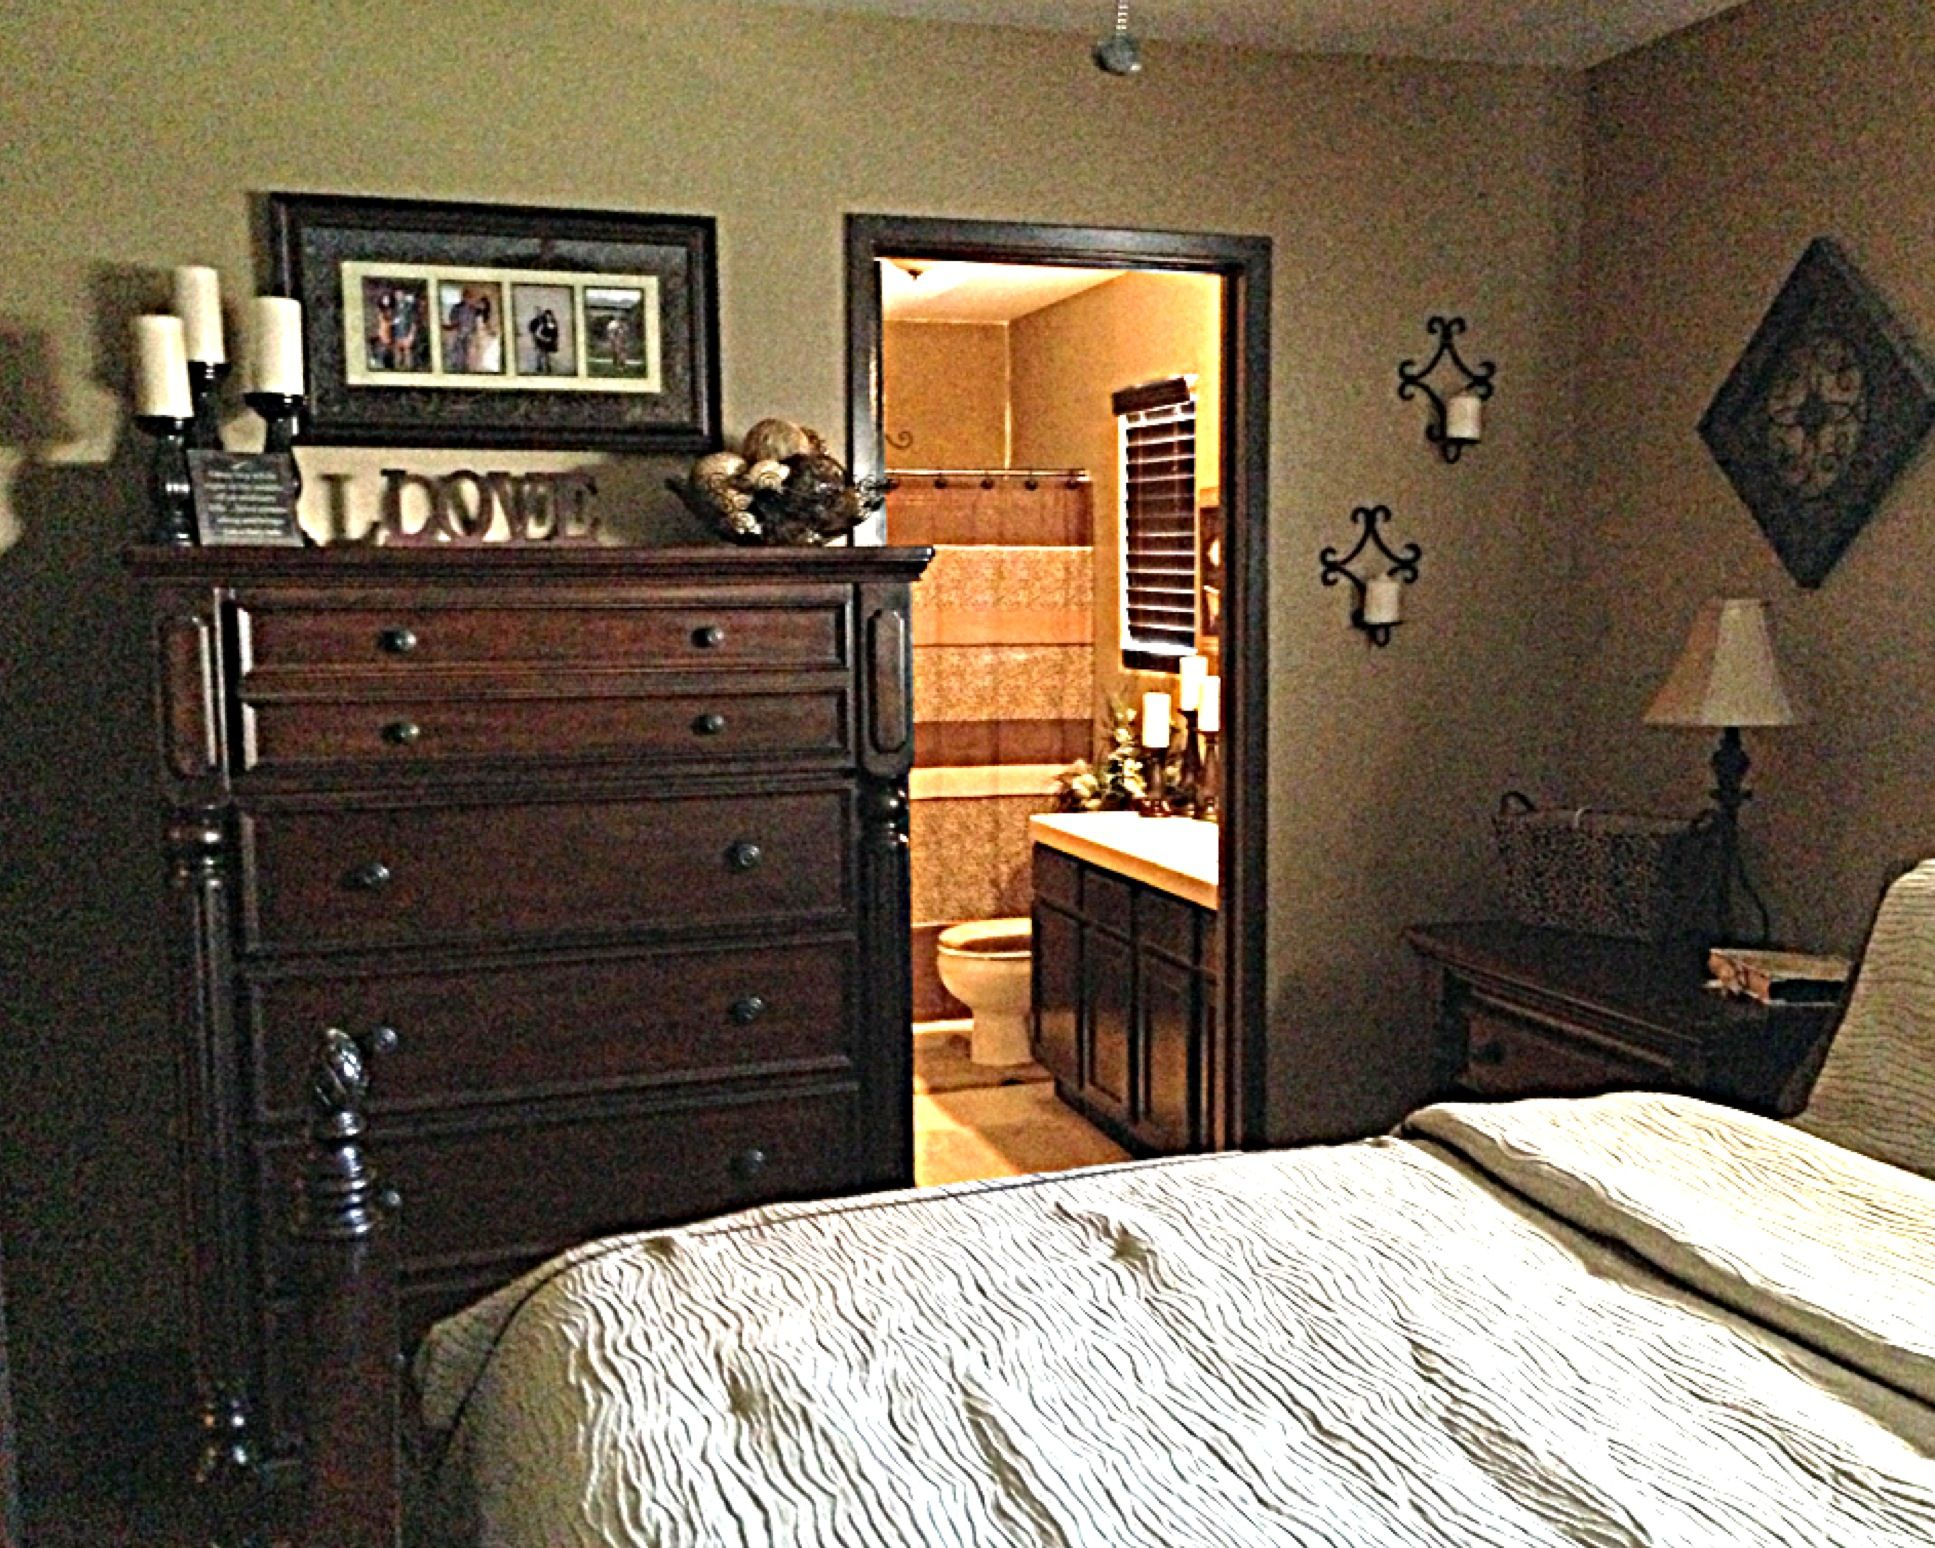 Tall Dresser With Decor Masterbedroom Our Room Pinterest Dresser Bedrooms And Master Bedroom